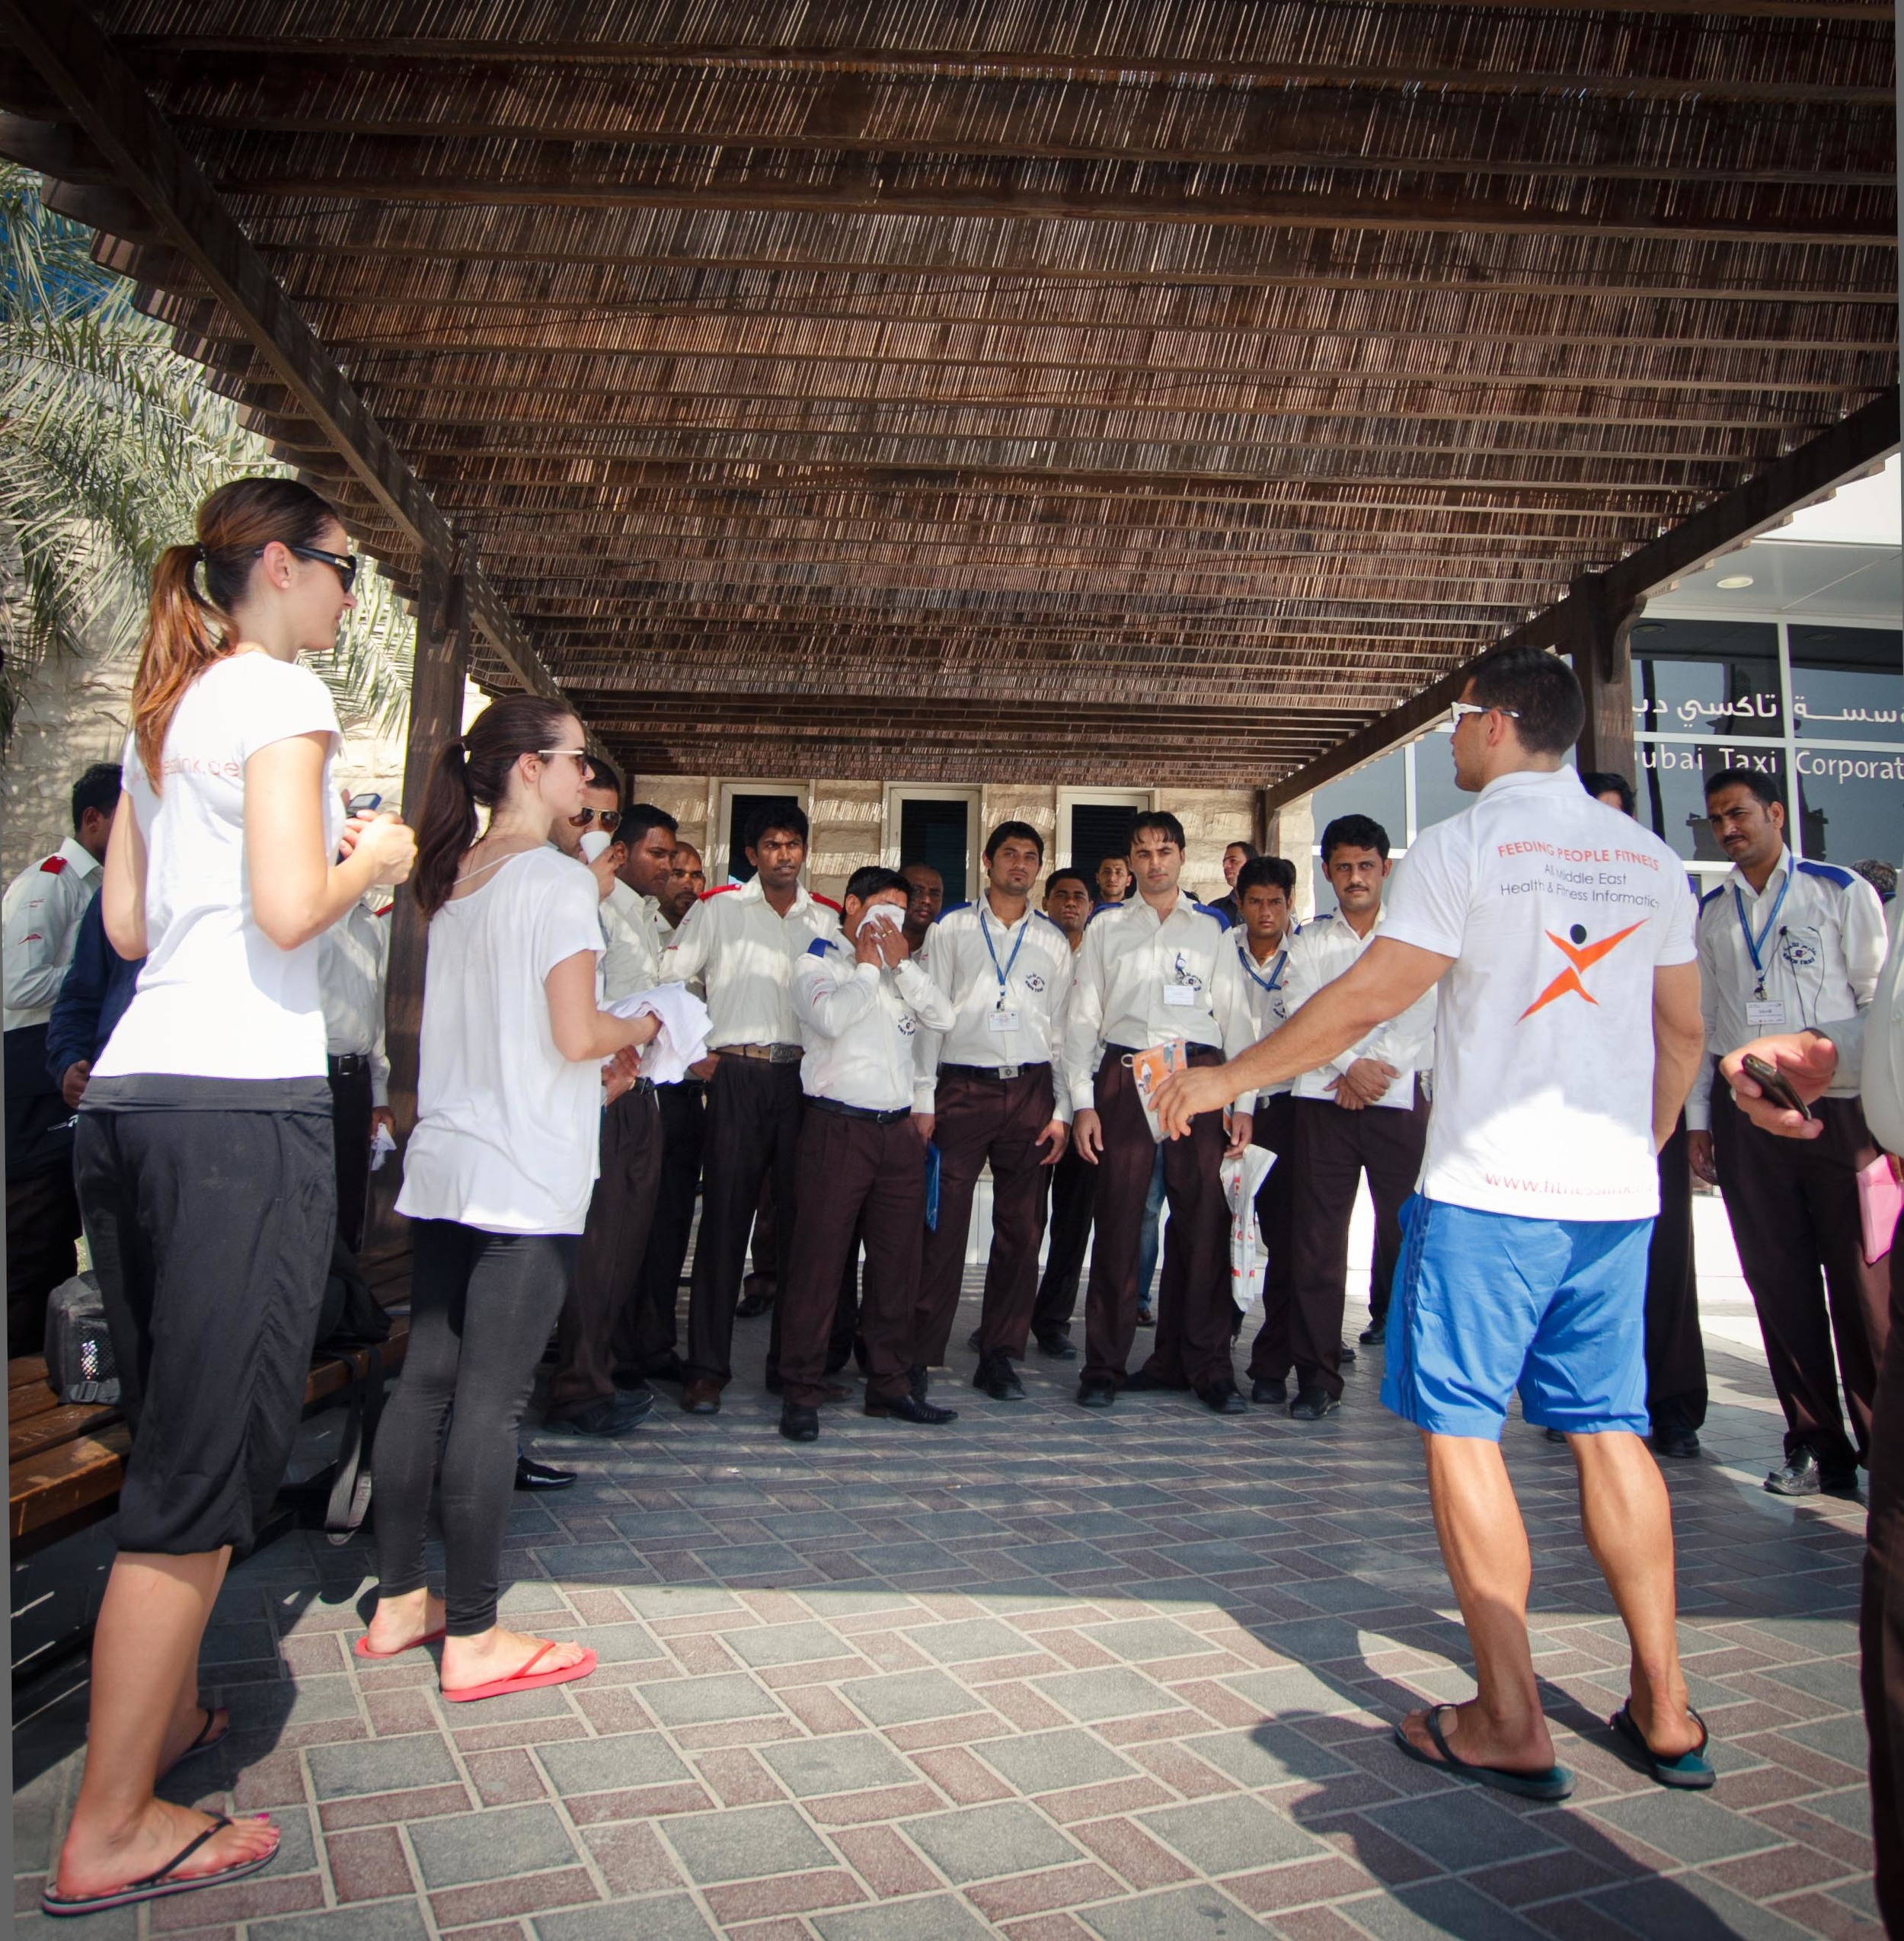 FitnessLink Co-Founder Grant Goes demonstrates some stretches and offers health advice to a group of RTA Taxi Drivers.